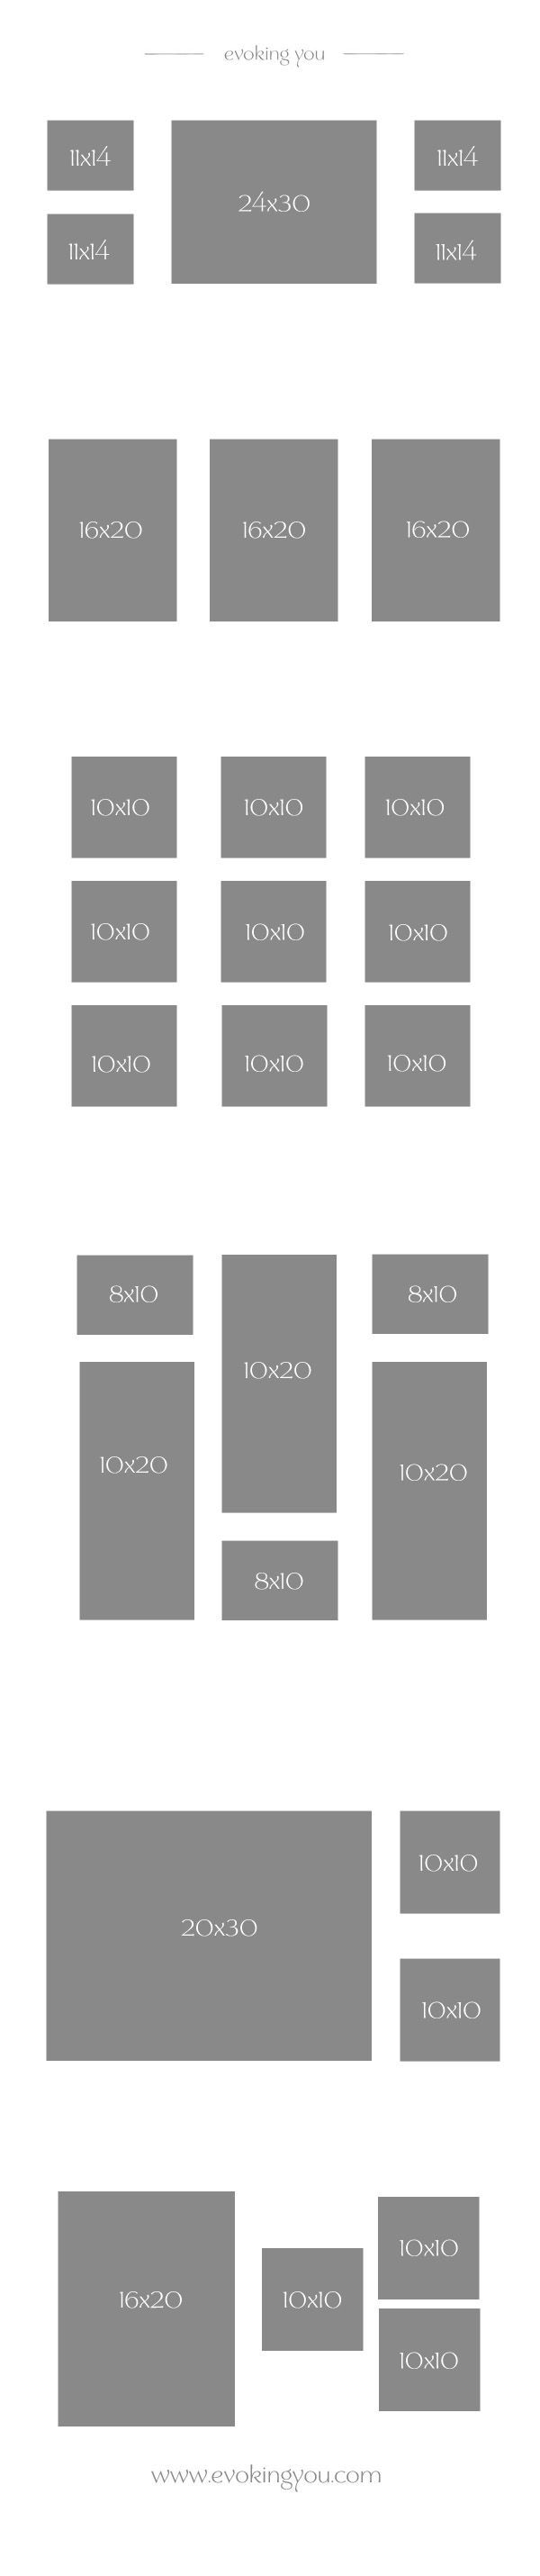 Display your portraits template frame ideas for wall for Canvas print arrangement ideas